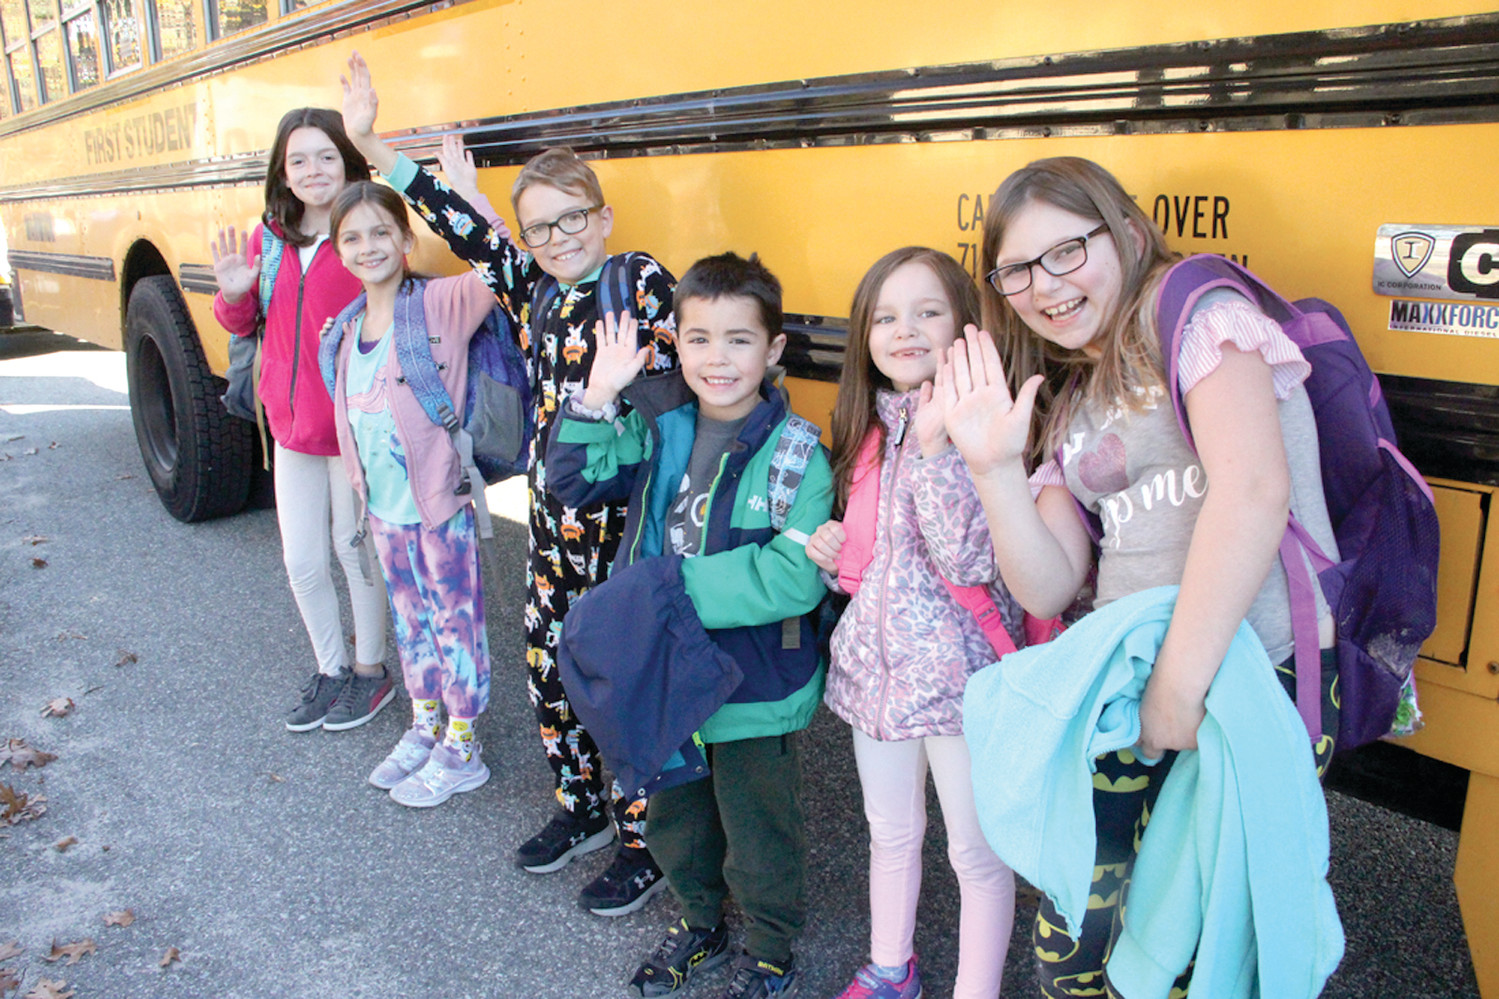 THE CANDIDATES: Bus 35 Cedar Hill School students Grace Marchand, Jordyn Mailloux and Cole Preston, who are running for governor, and mayoral candidates Brenton Zagryn, Bella Grenier and Olivia Harrington give a friendly wave. (Warwick Beacon photos)